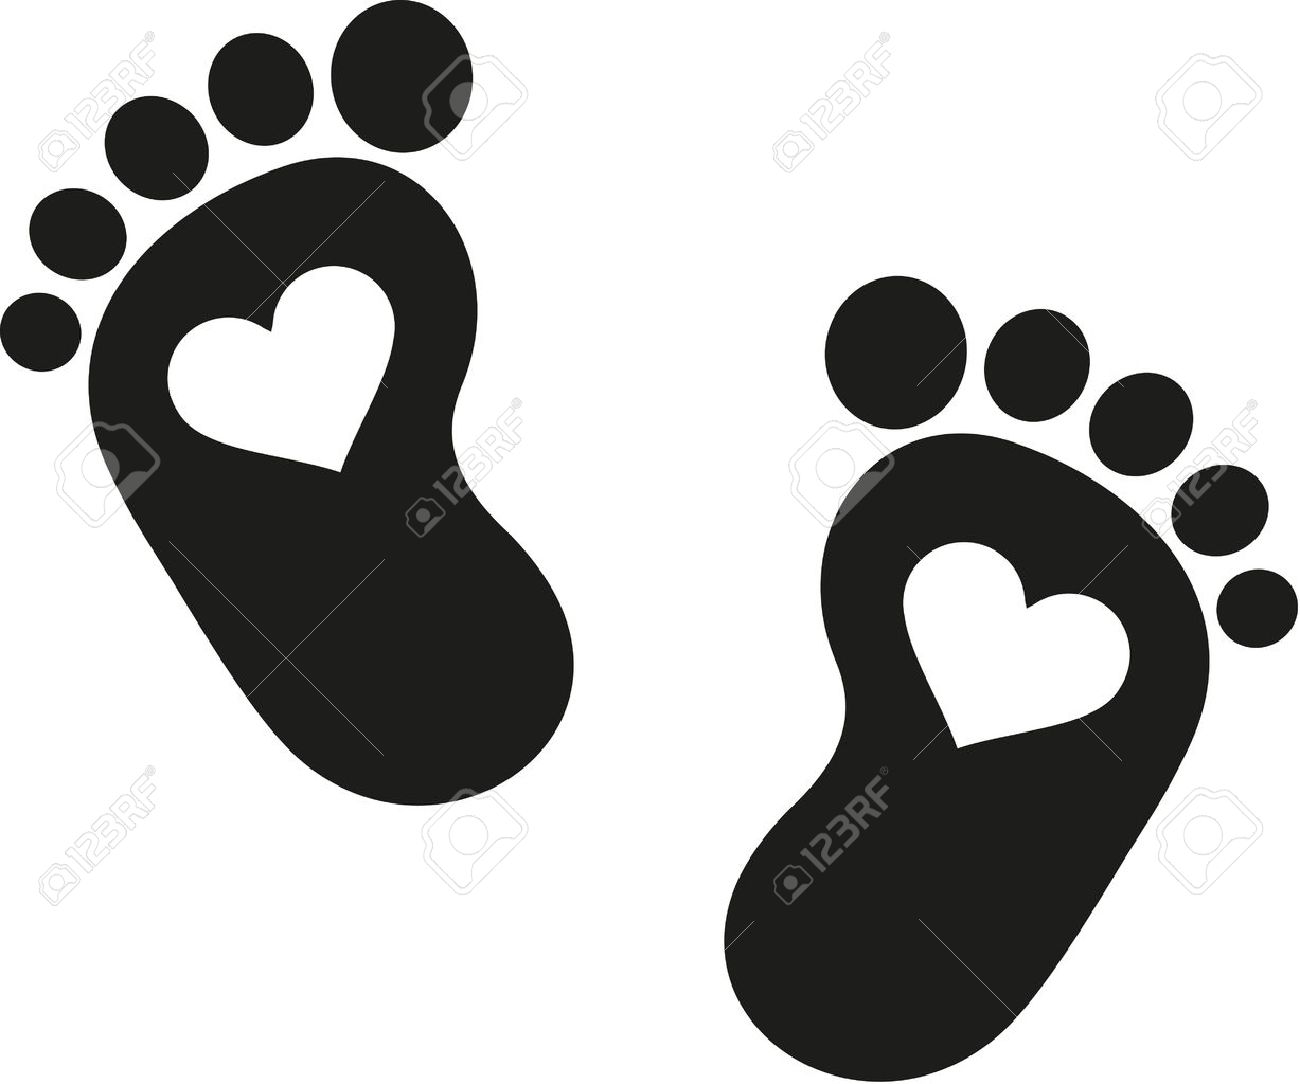 Baby footprint icon with hearts - 50640170